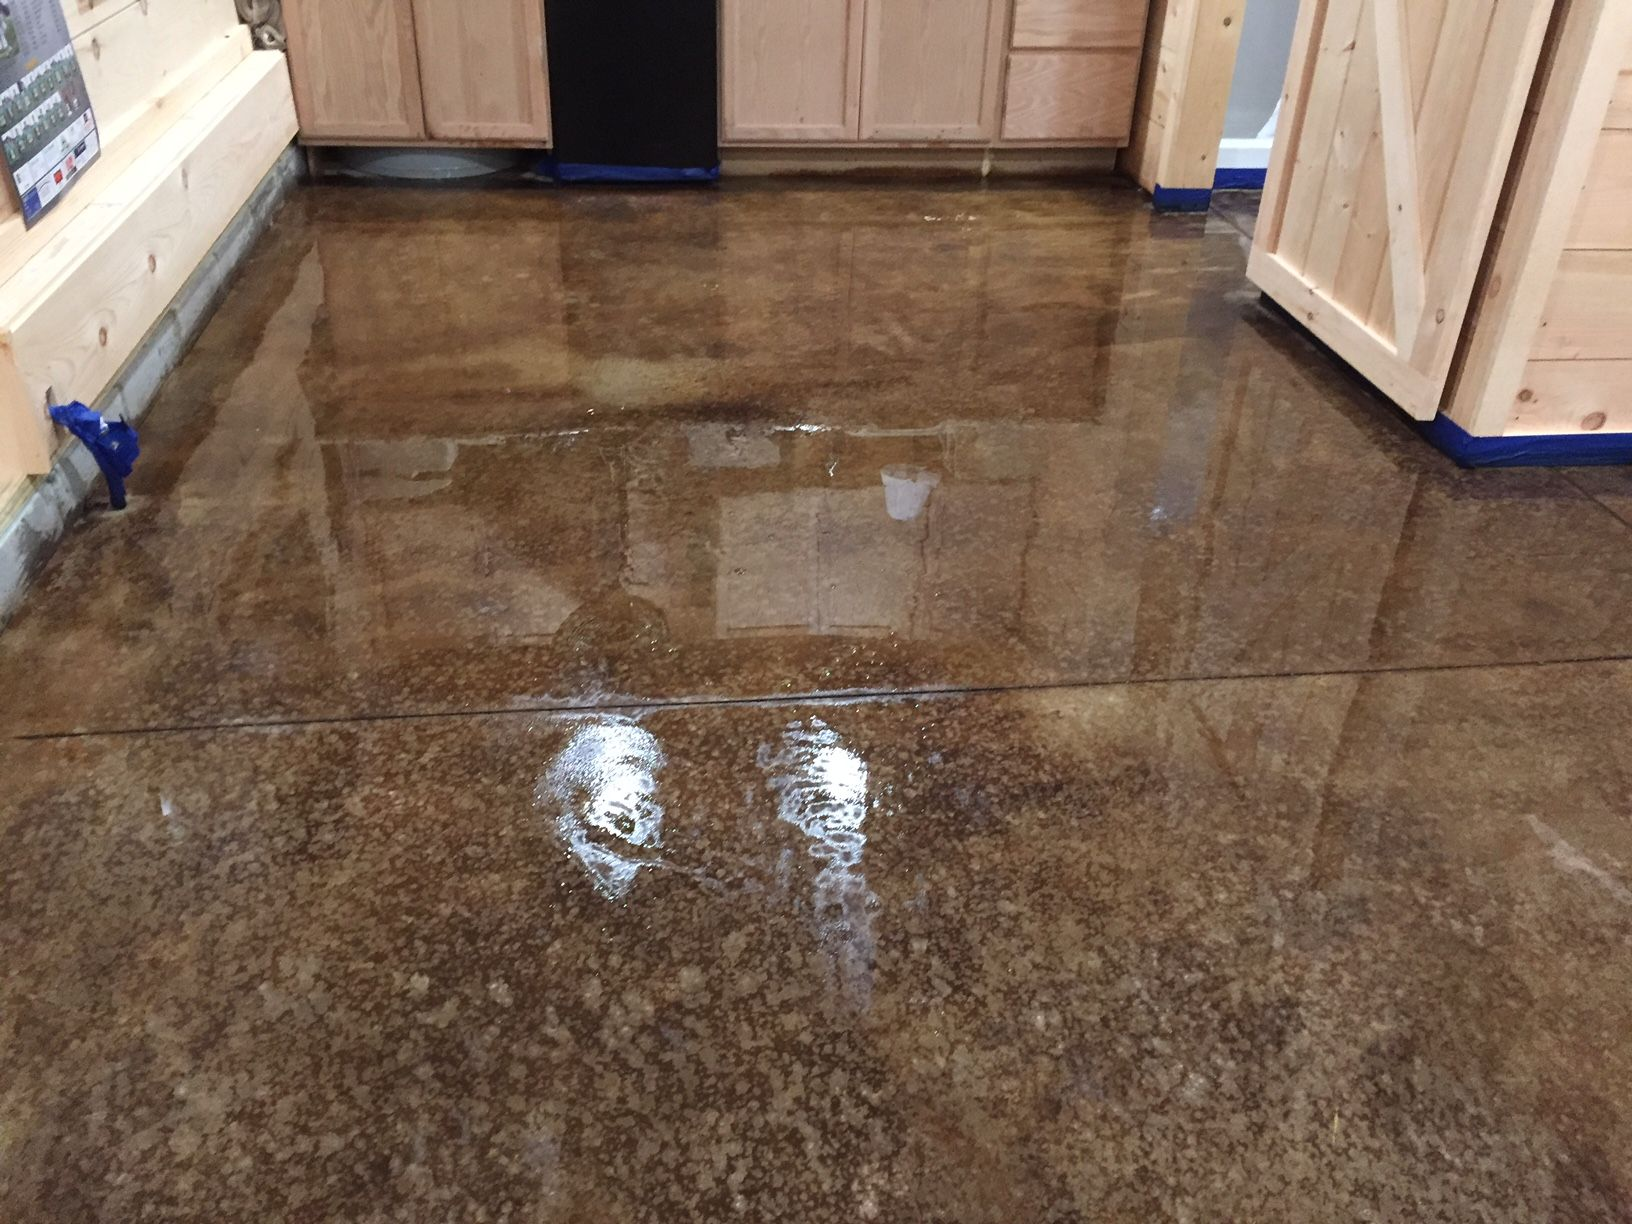 Acid Staining Our Concrete Floors - An Expensive Look At Little Cost